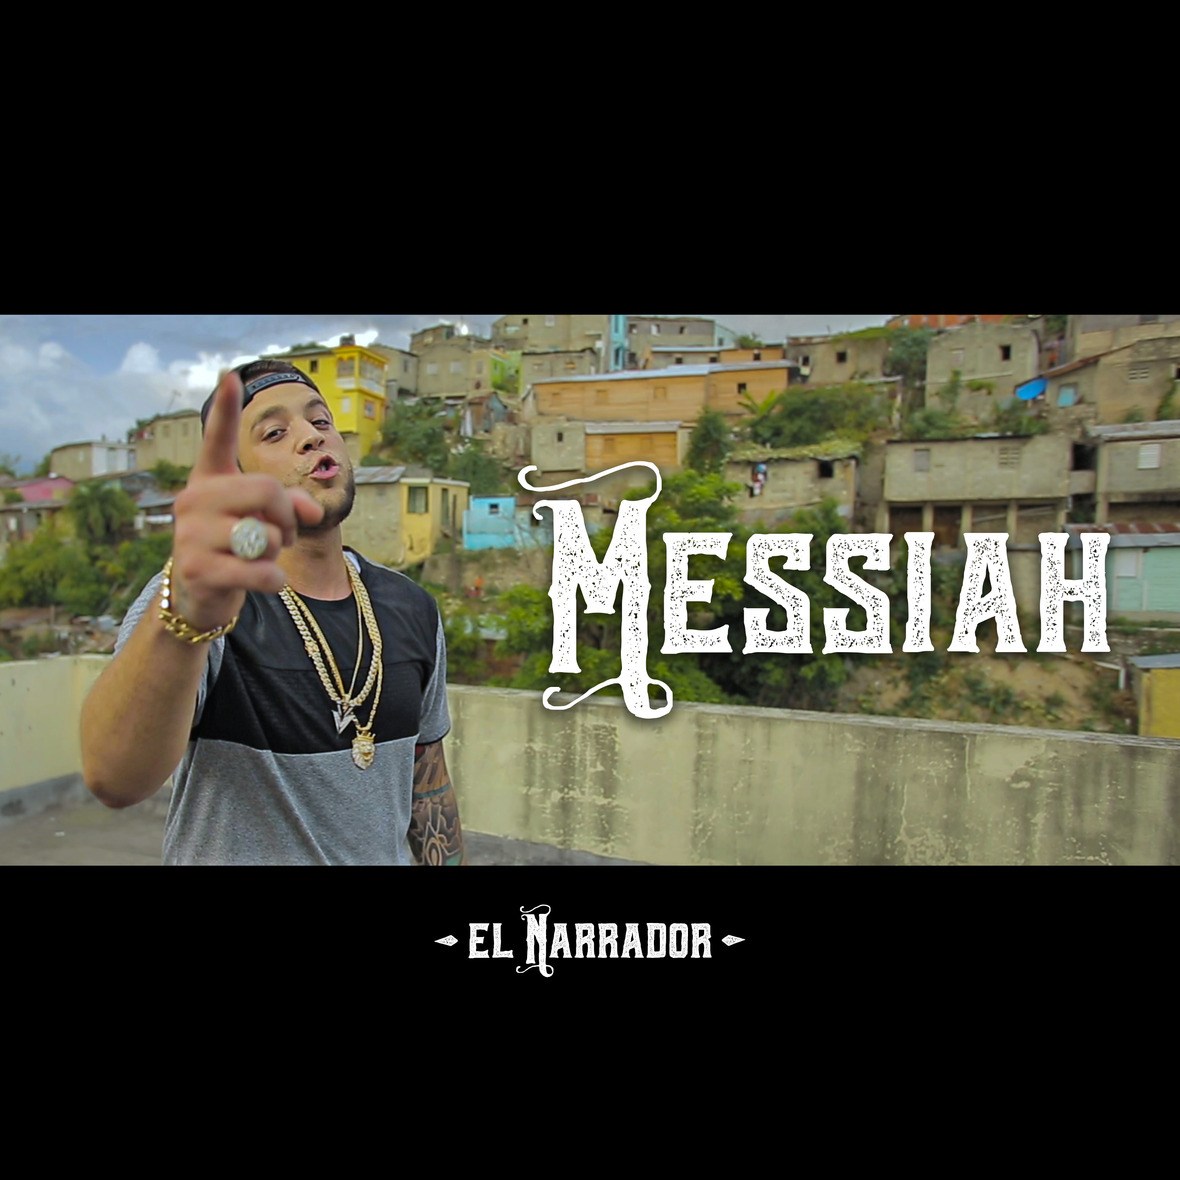 ELNARRADOR JTV Messiah